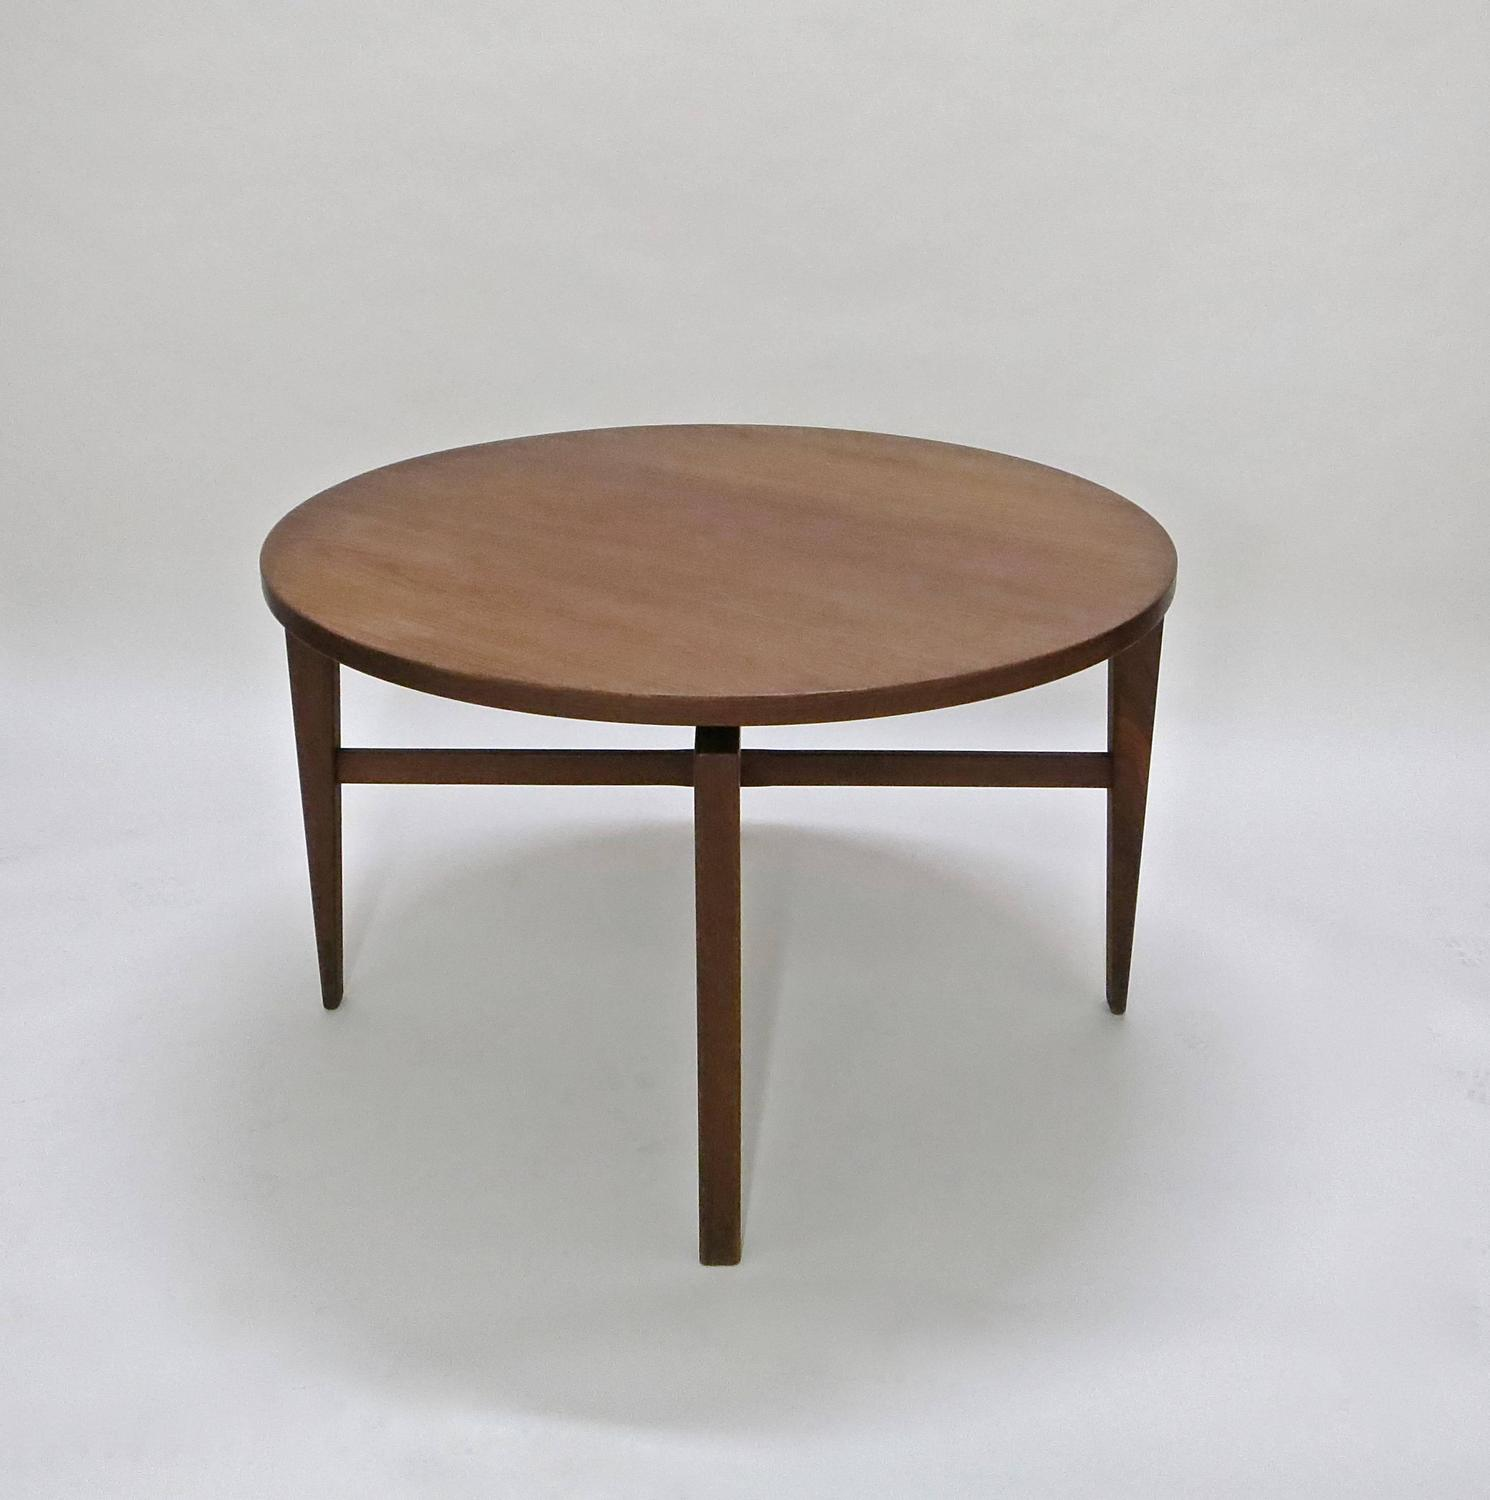 revolving chair supplier folding chairs wood rotating table by jens risom circa 1950 original